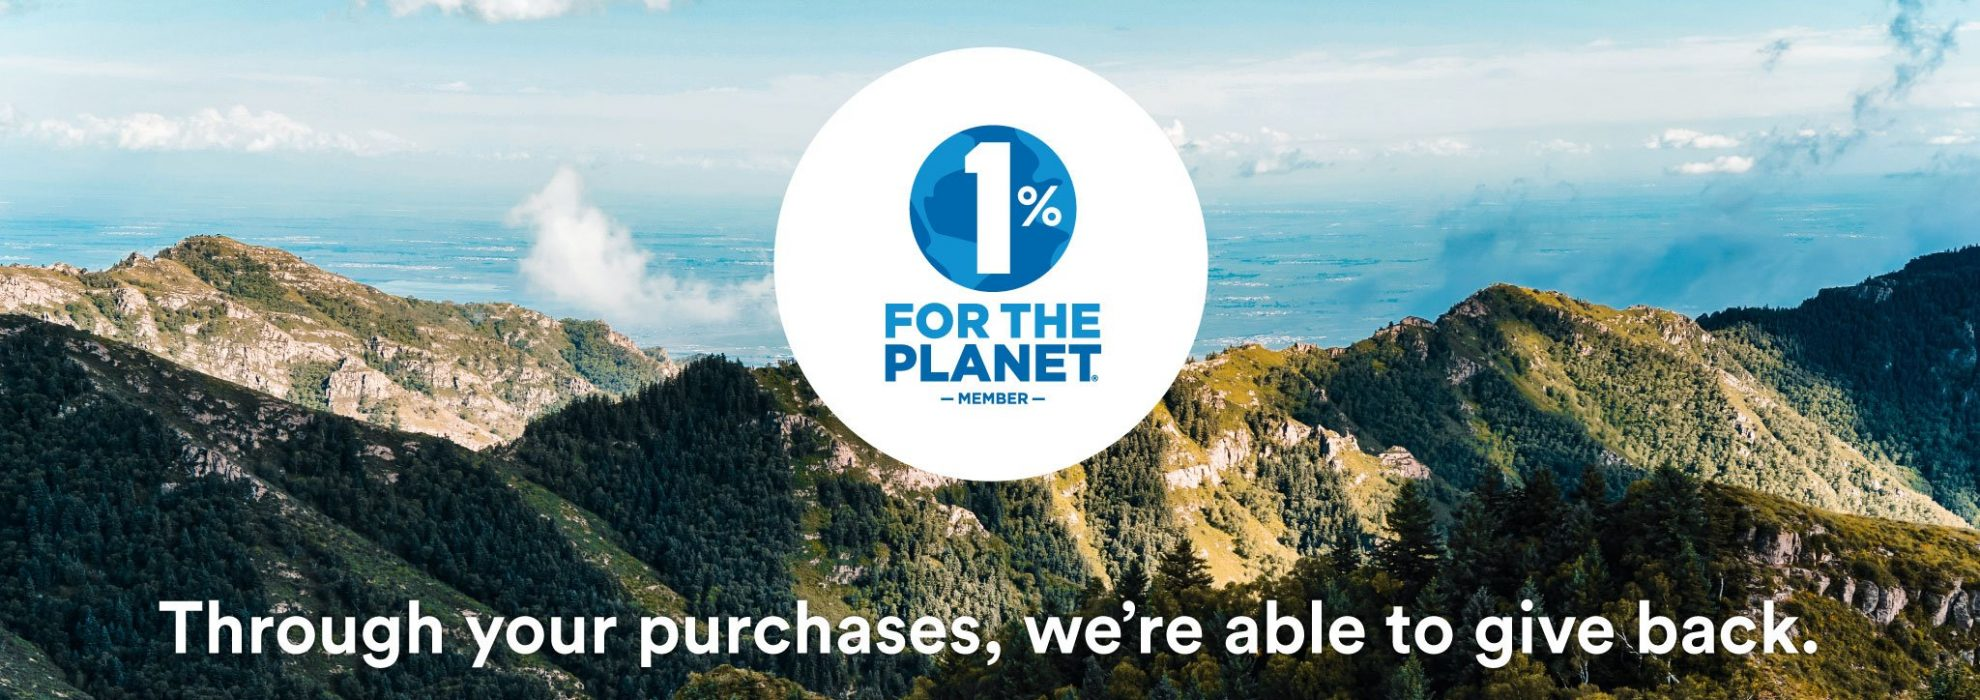 Proud member of the 1% for the planet initiative